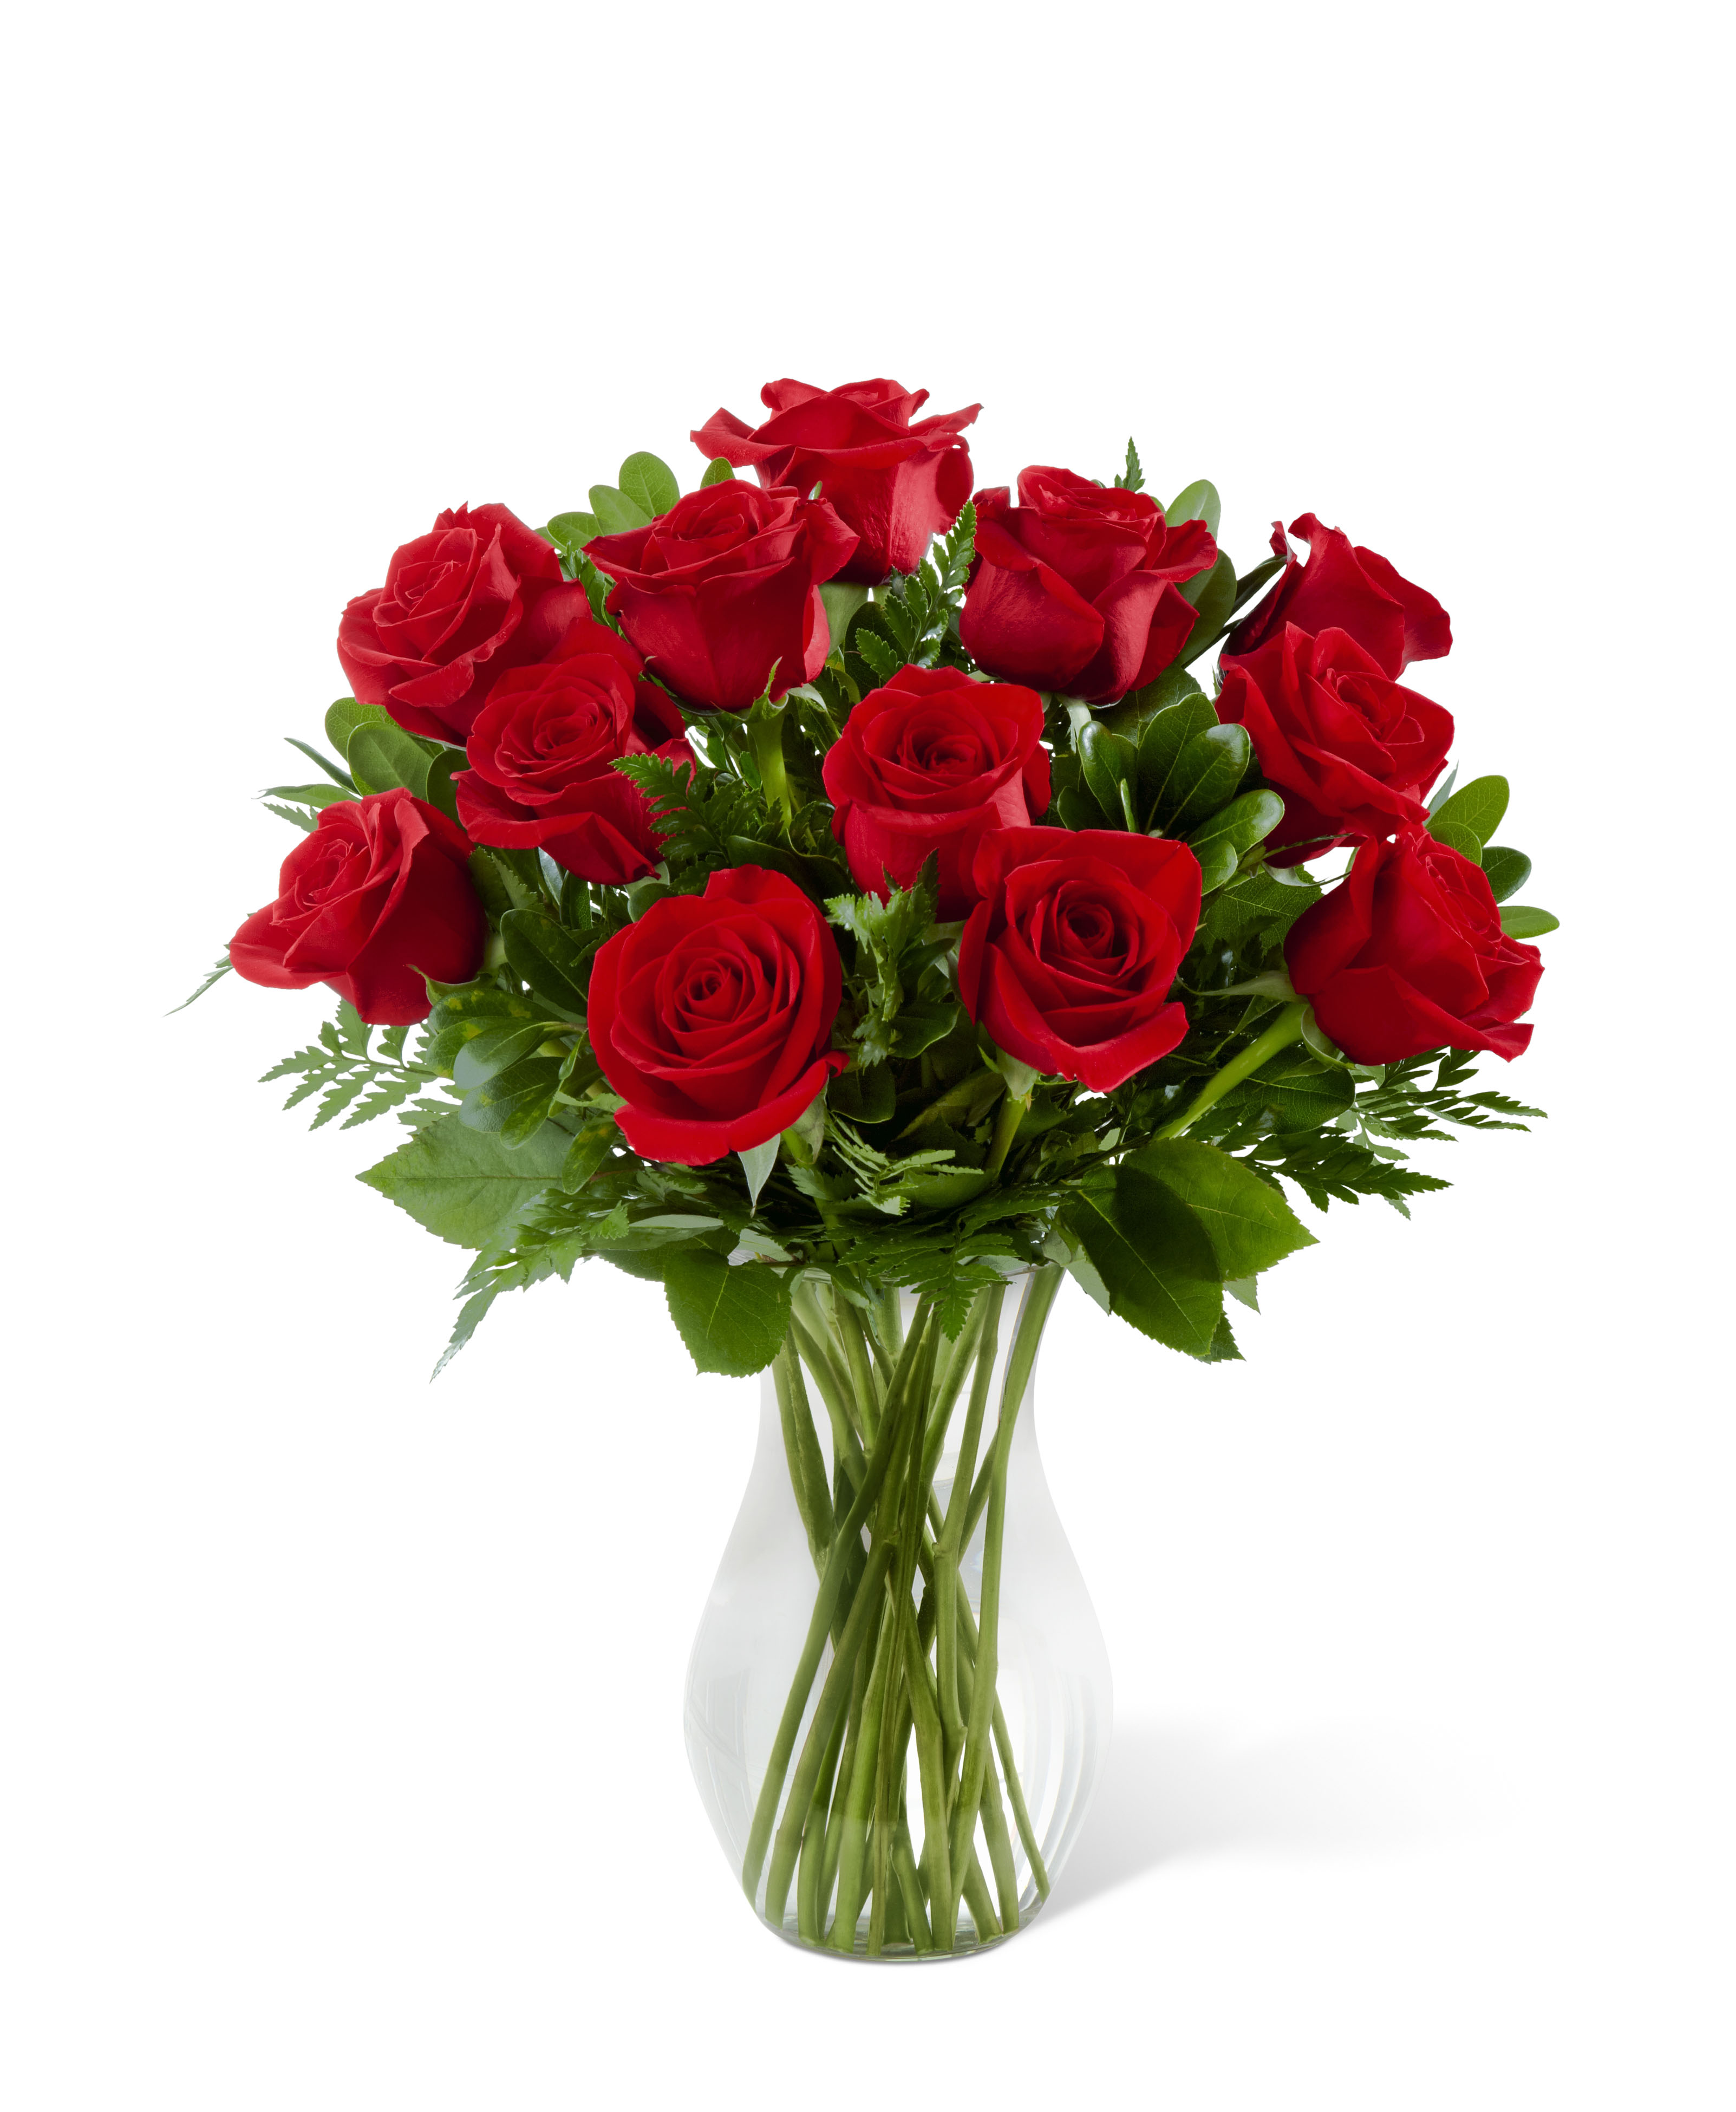 February flowers by abigail lucy the ultmate flower of love roses are one of the worlds most brought flowers perfect february flower symbolising valentines day and representing beauty izmirmasajfo Images